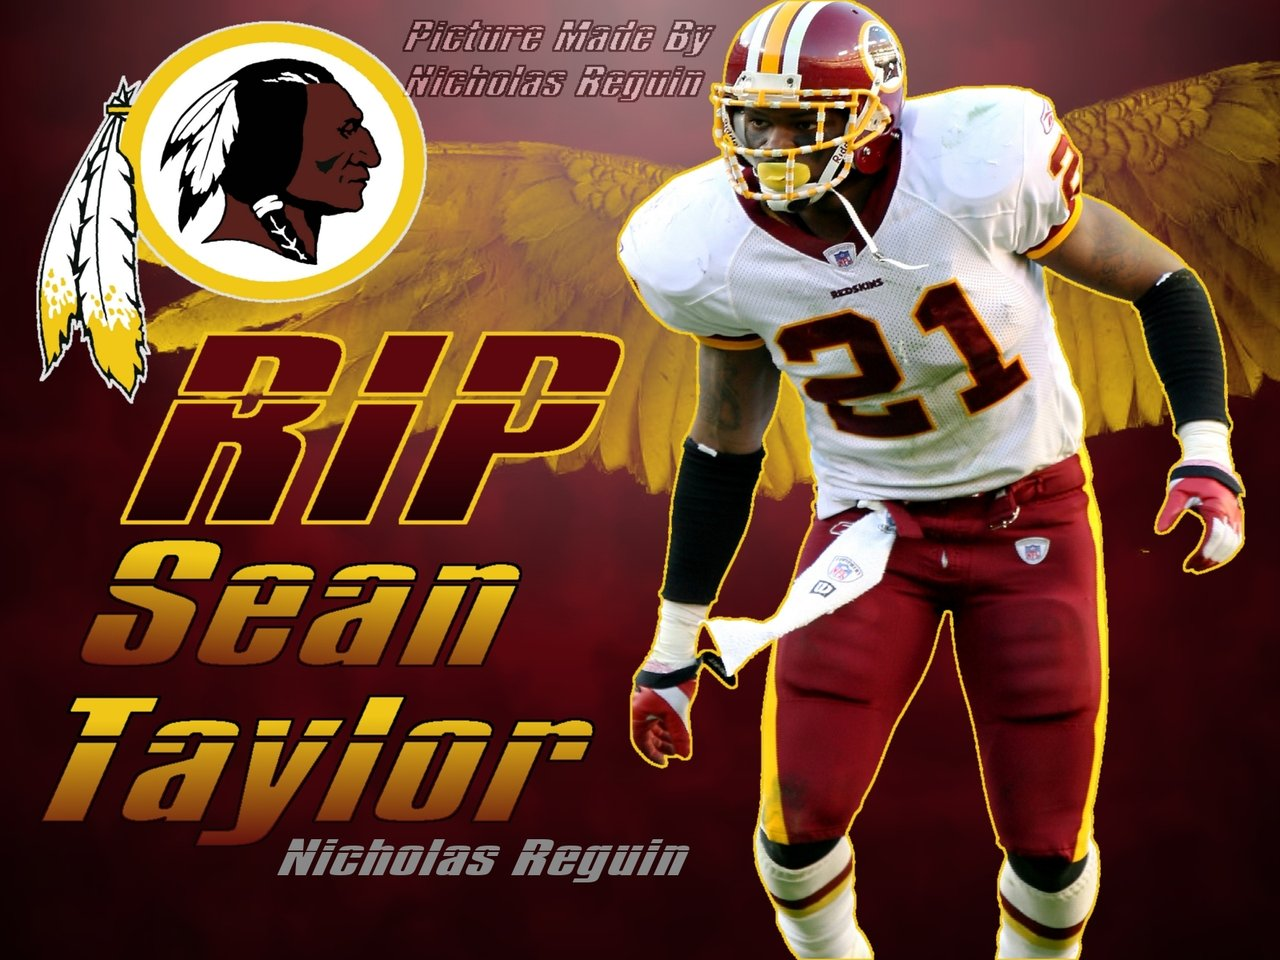 RIP Sean Taylor Washington Redskins Background by FBGNEP 1280x960